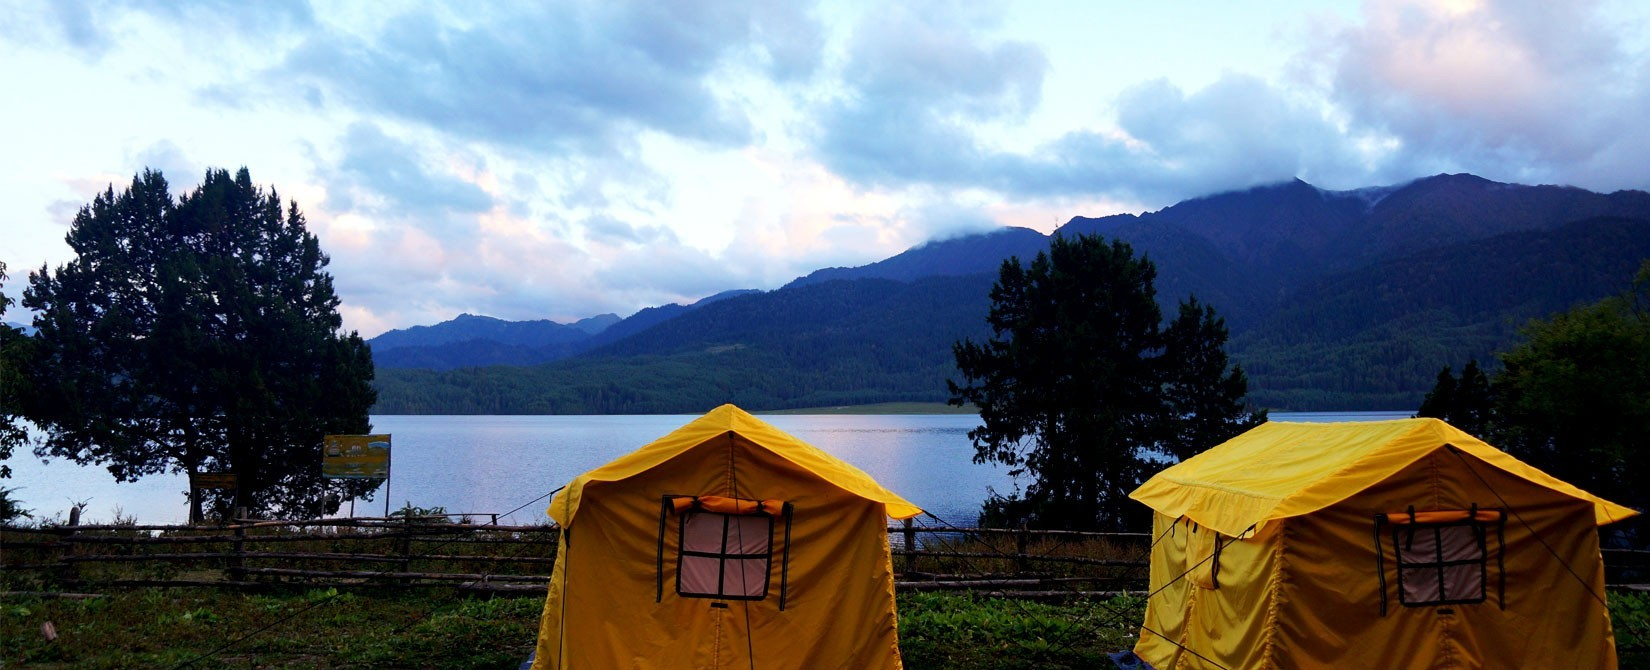 Camping in Rara Lake